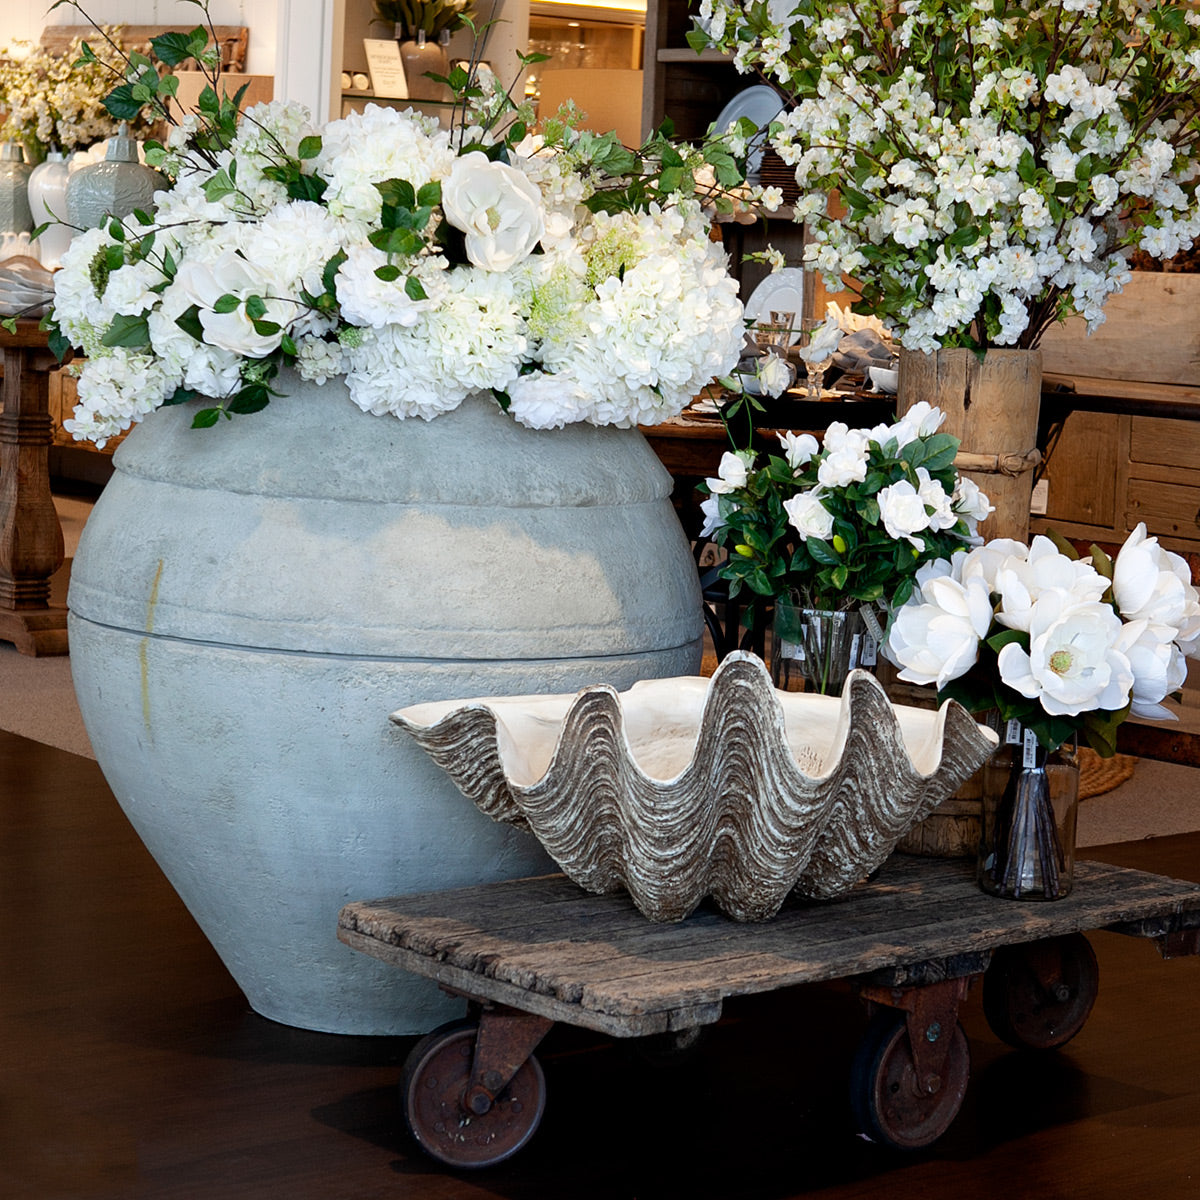 The Poros planter filled with white flowers.